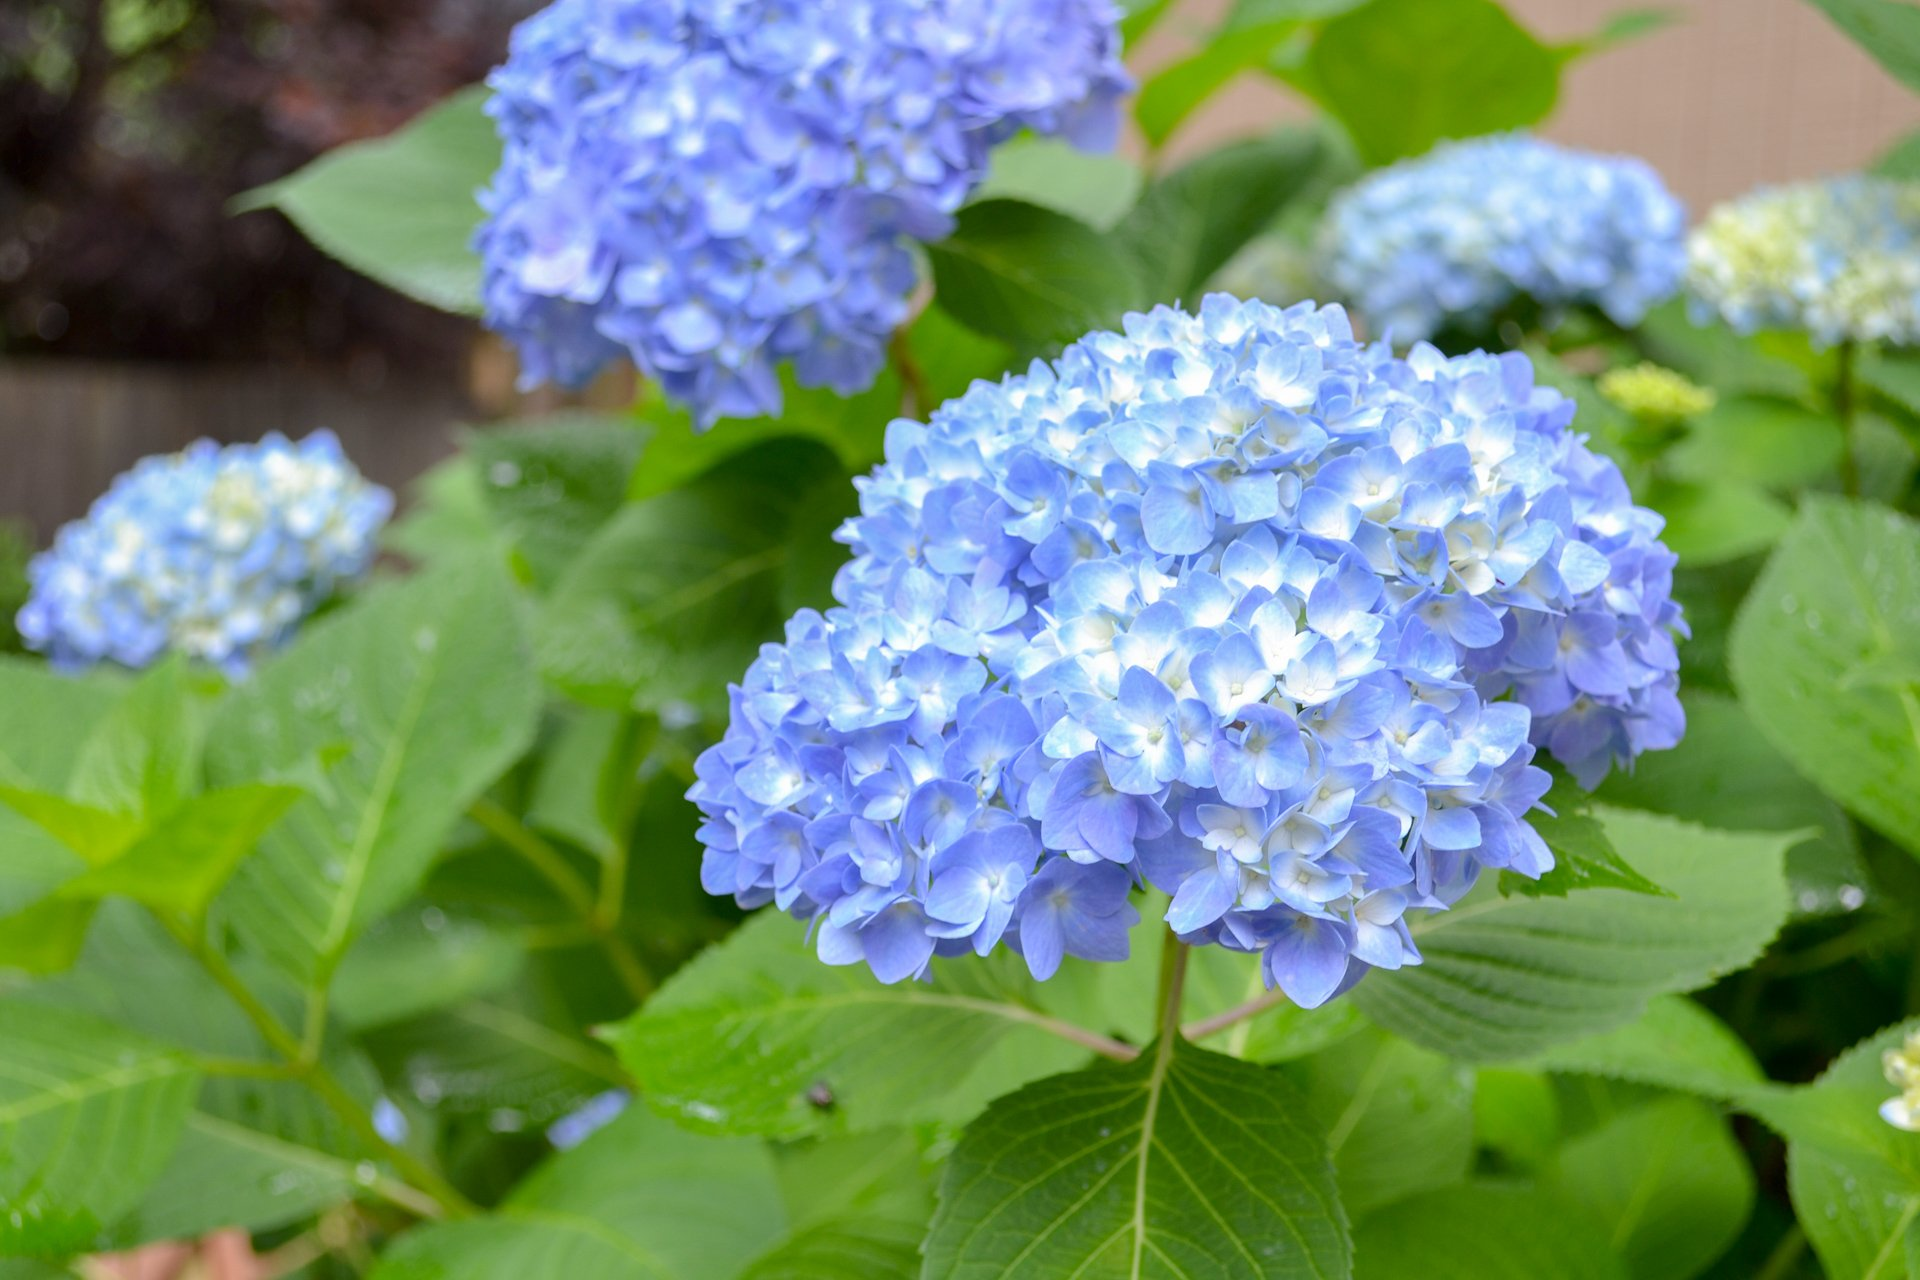 Over the season, hydrangeas will get brighter and bluer if the soil is acidic.